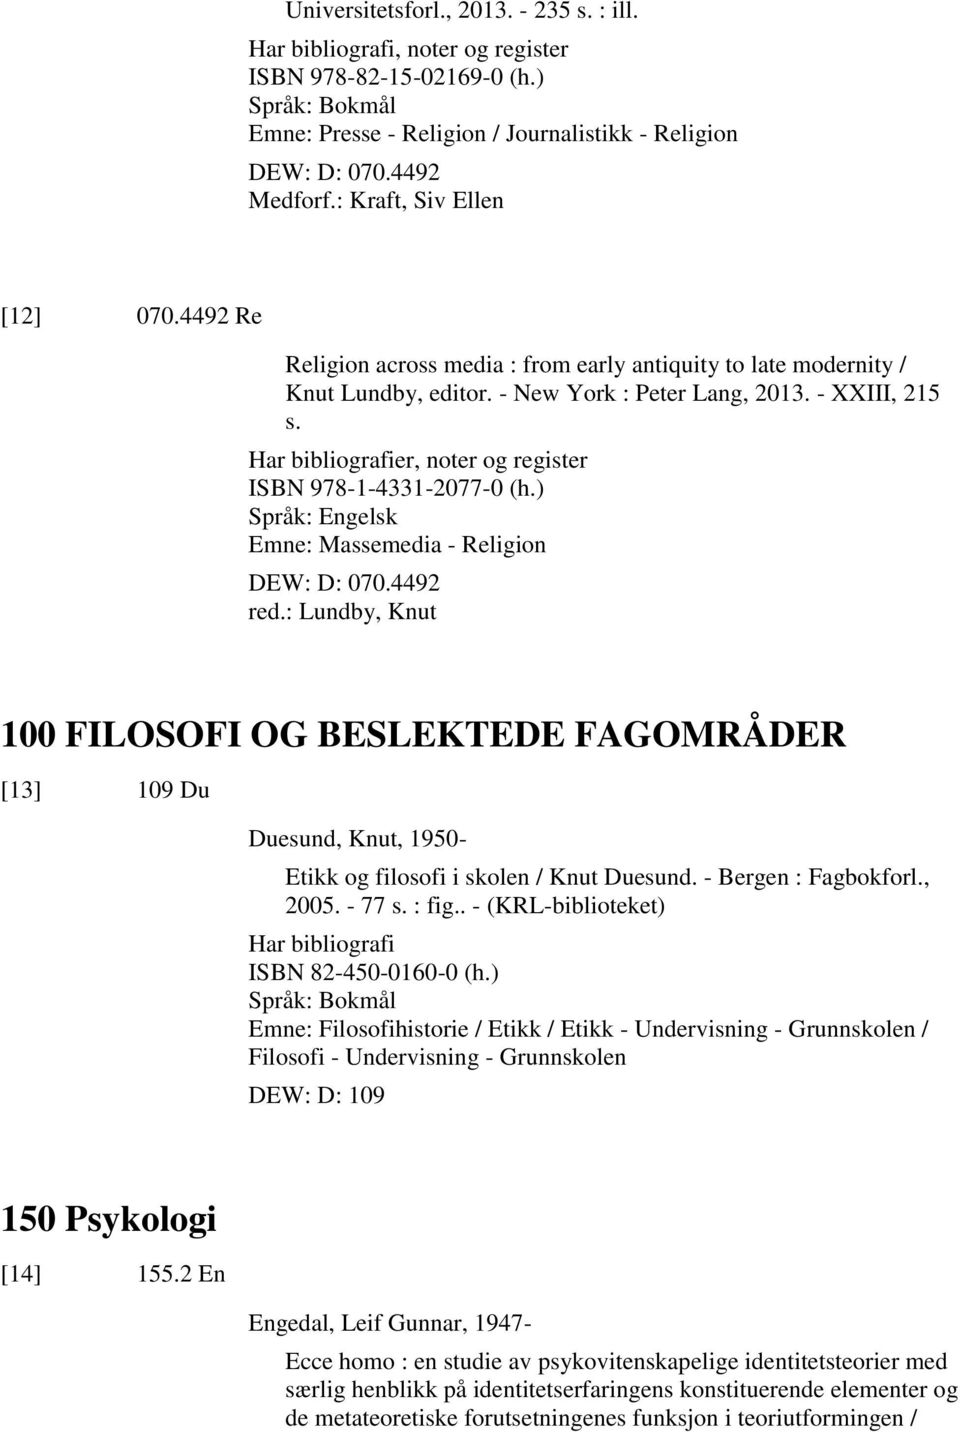 Har bibliografier, noter og register ISBN 978-1-4331-2077-0 (h.) Emne: Massemedia - Religion DEW: D: 070.4492 red.